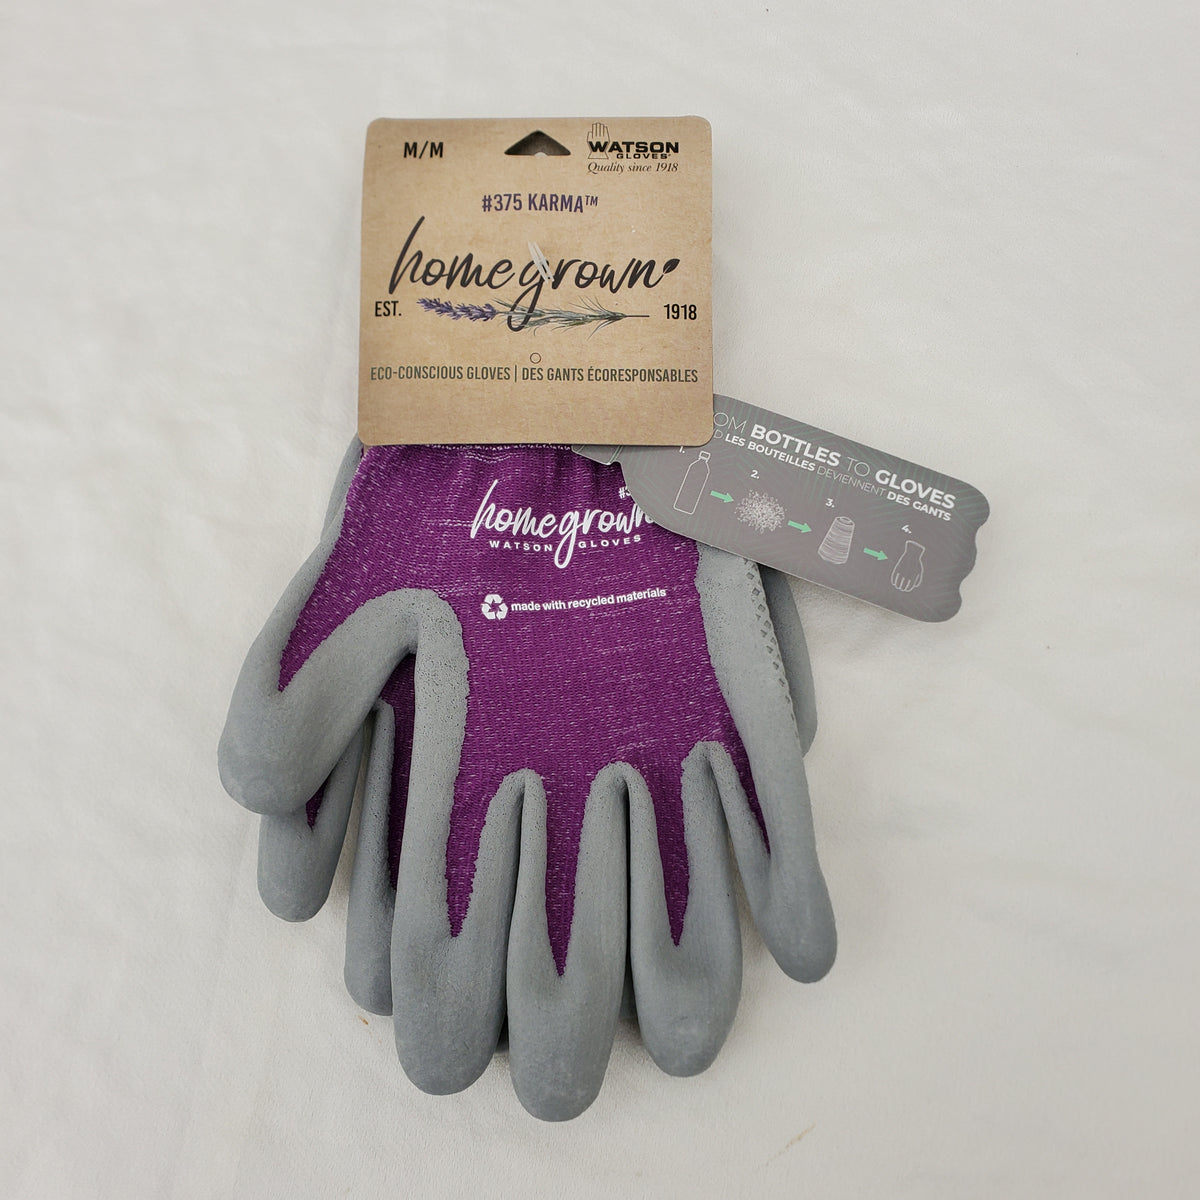 Watson Homegrown Karma Gloves